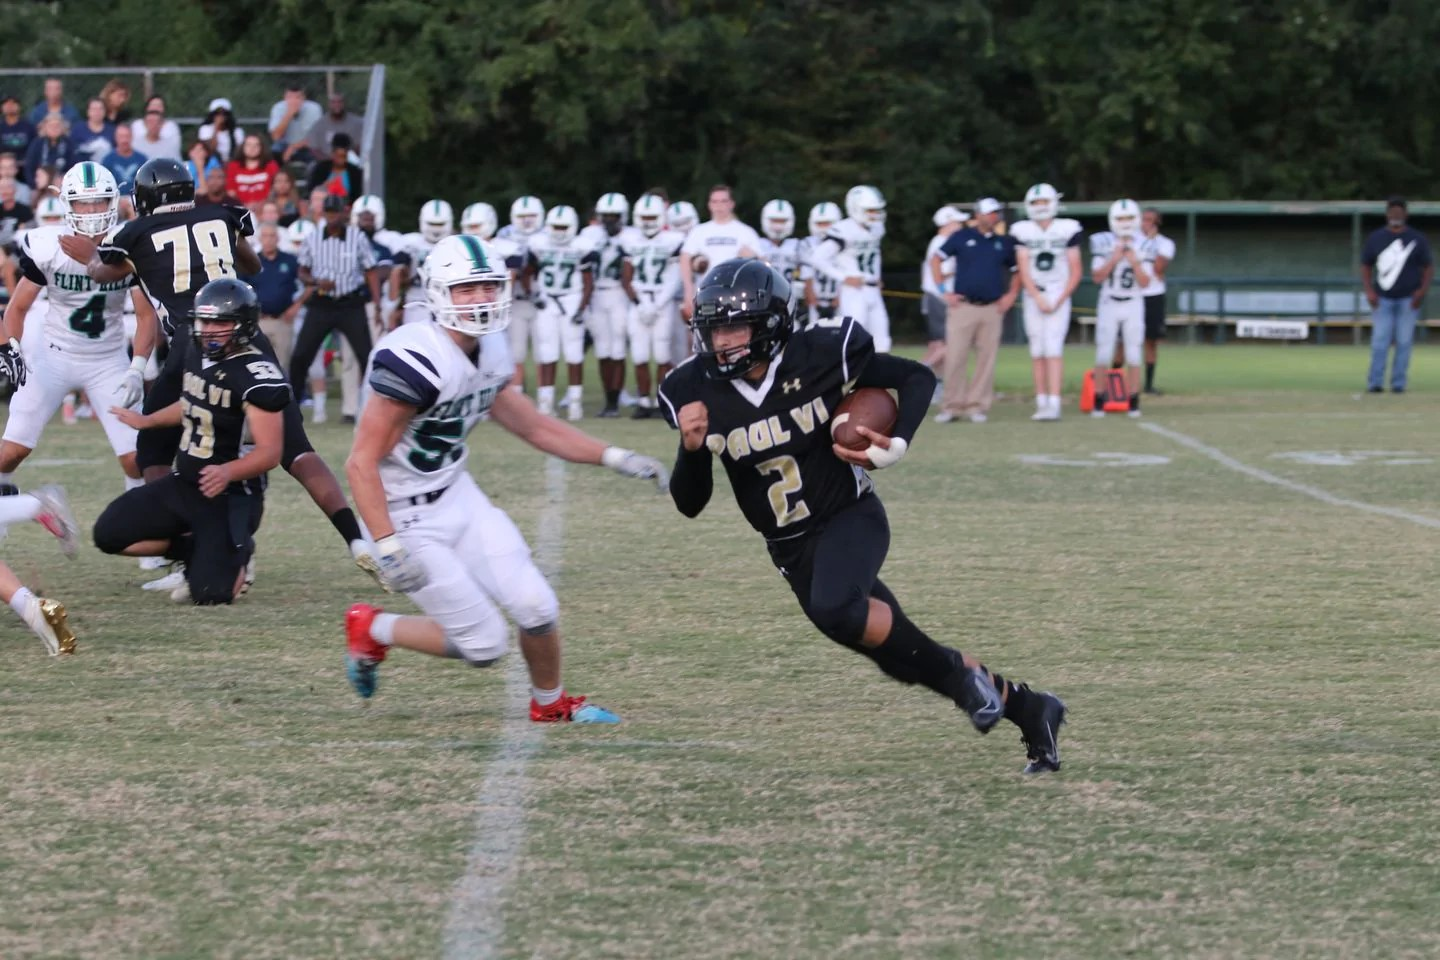 PVI Quarterback Ryan Cammas versus Flint Hill. (Photo by: Stephen Schultz)